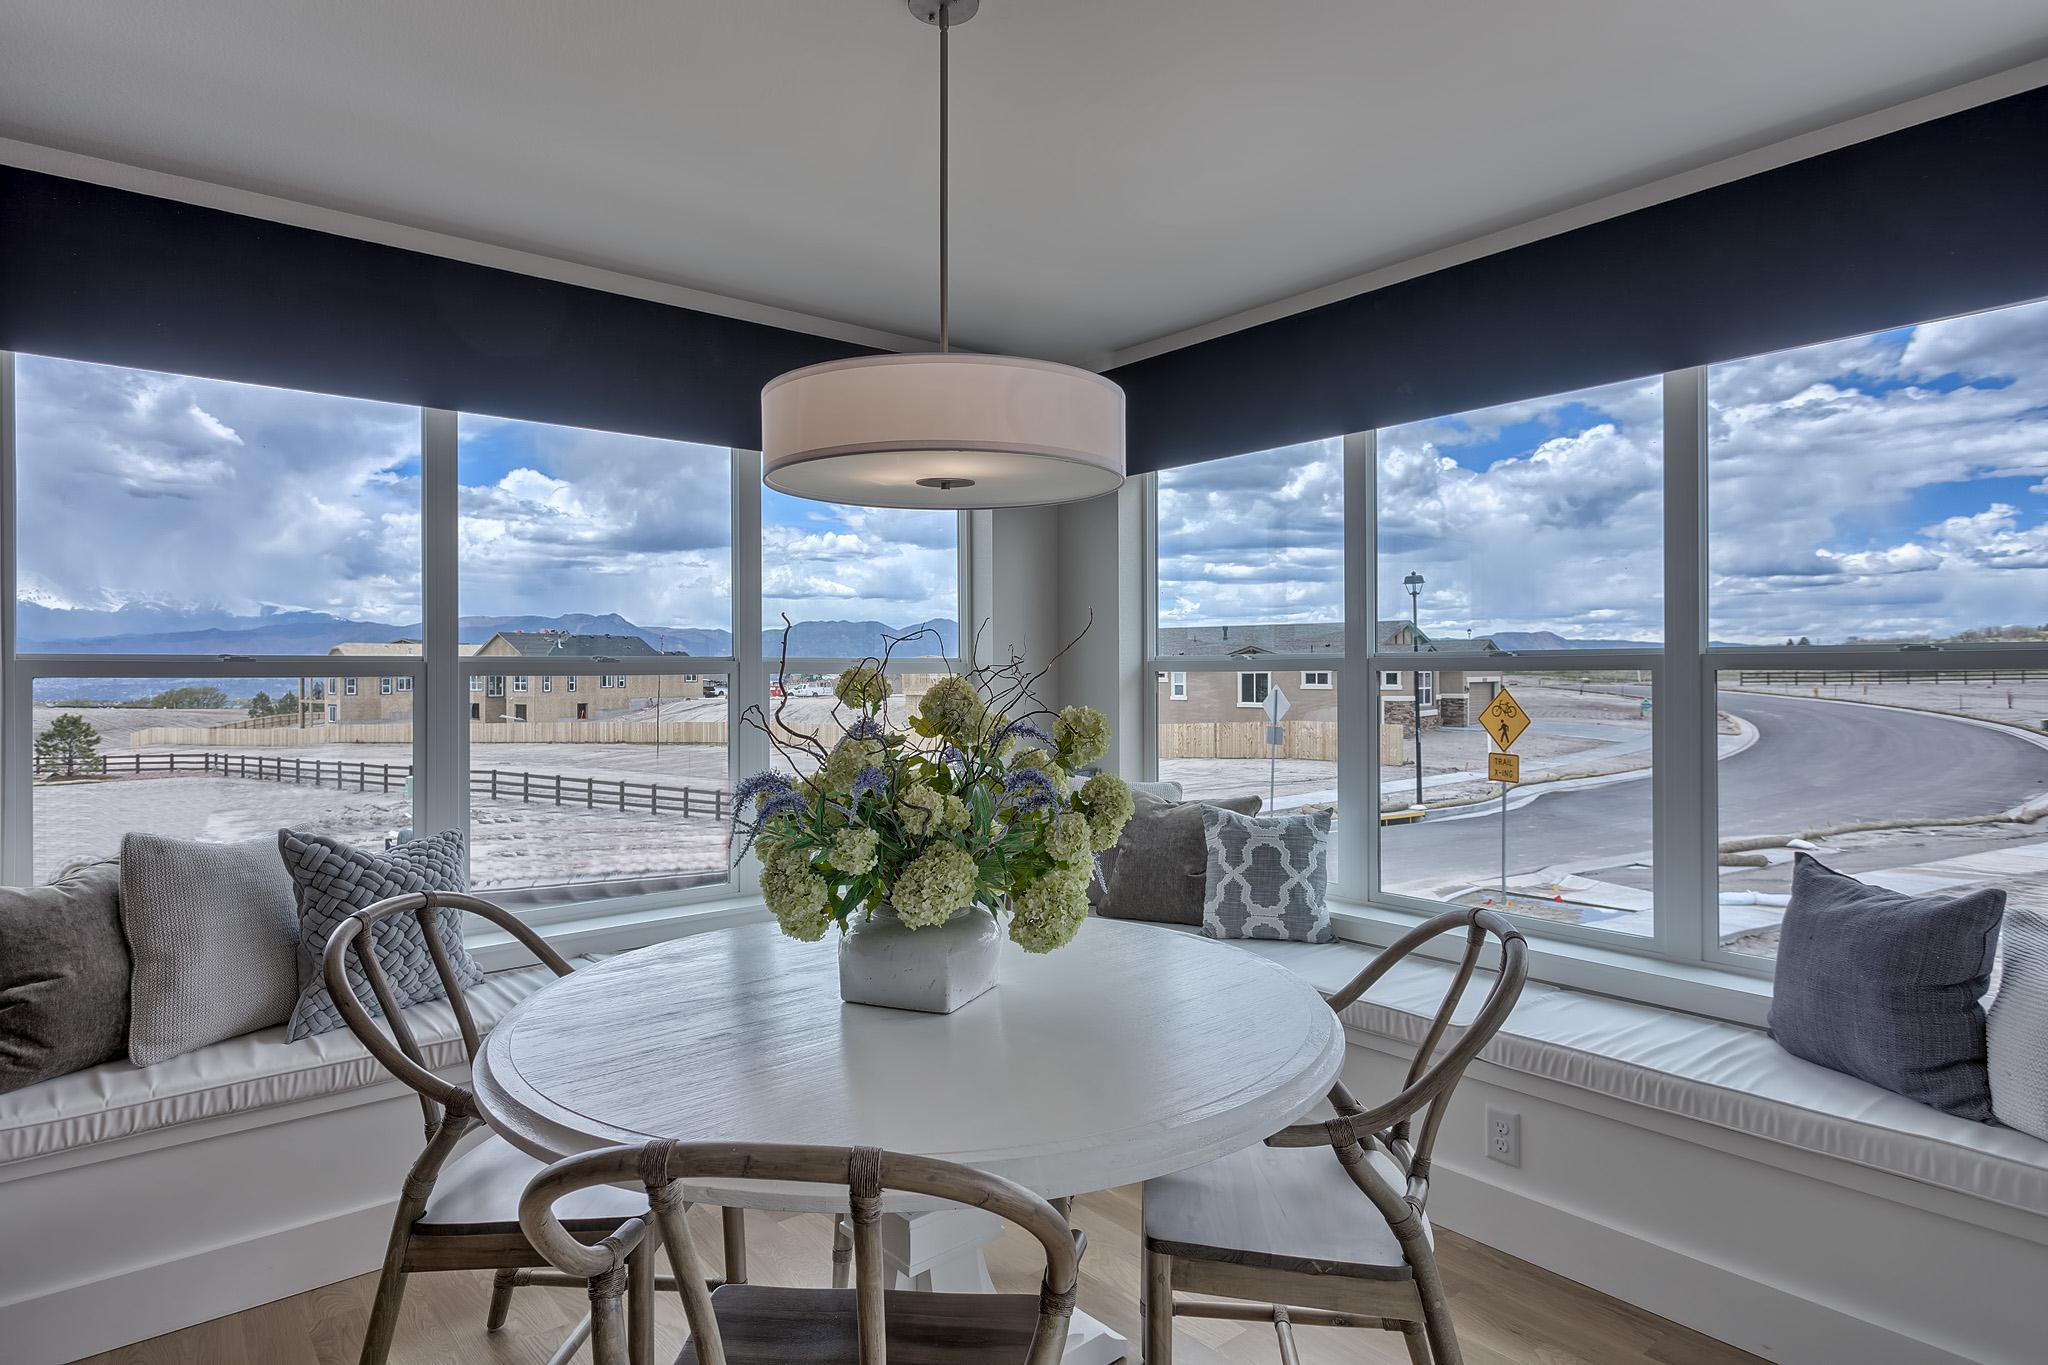 Kitchen featured in the Fresco By Keller Homes, A Toll Bros. Co. in Colorado Springs, CO